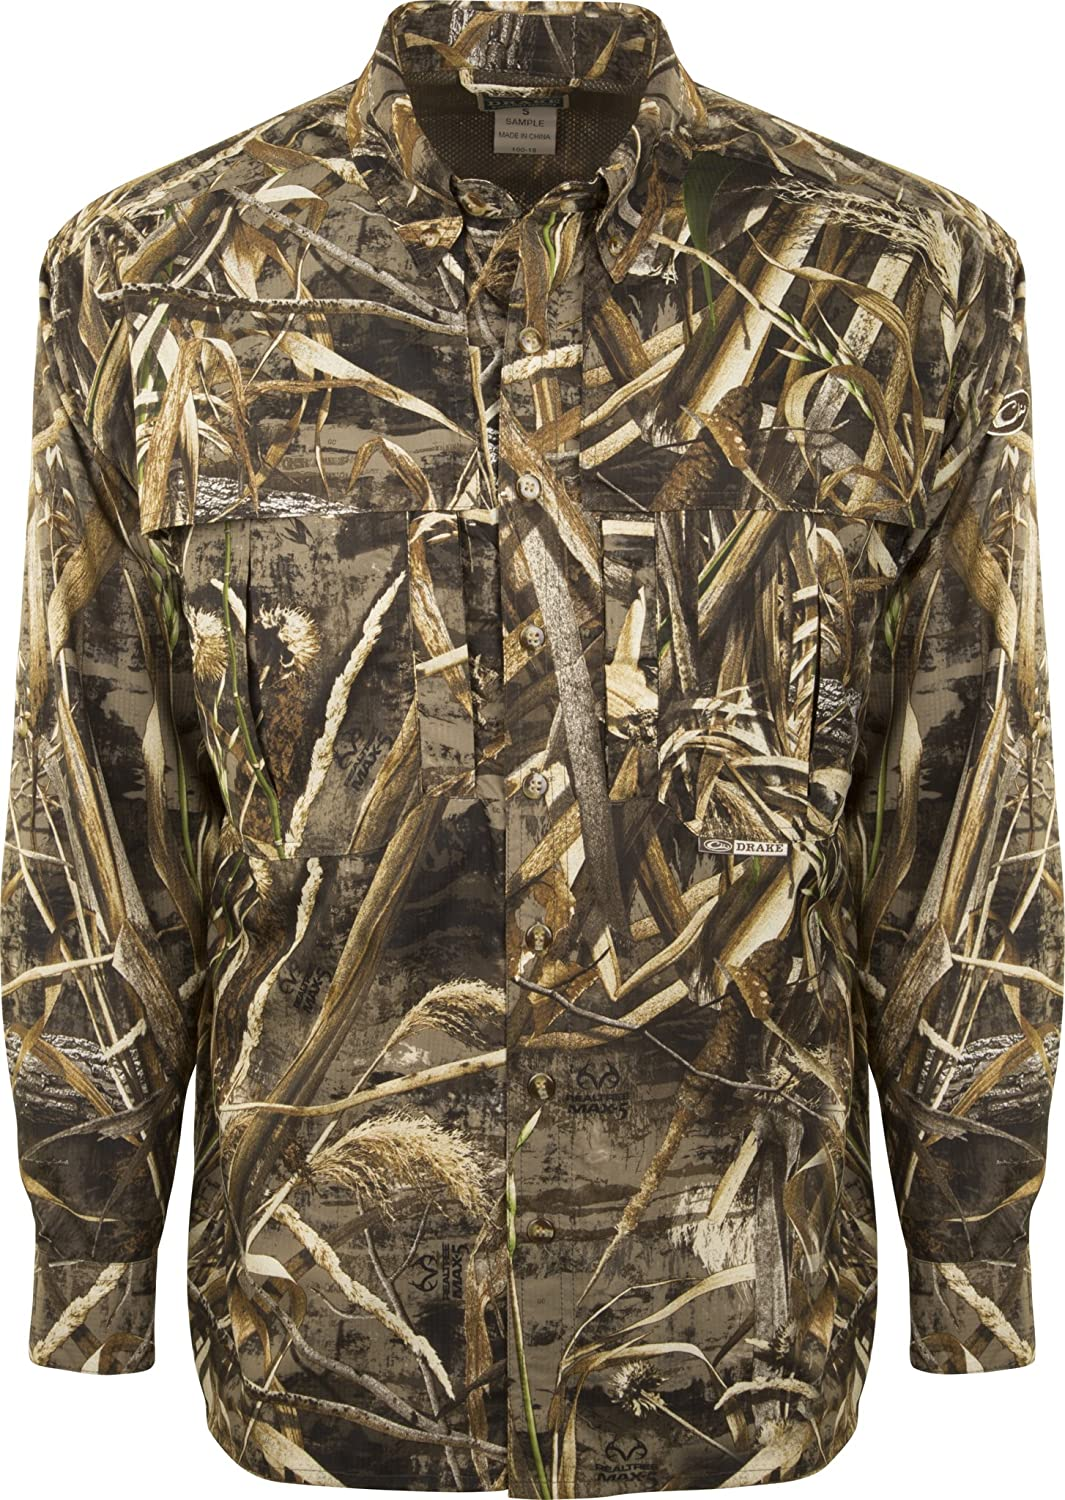 Drake EST Camo Flyweight Wingshooters Shirt with Mesh Back Long Sleeve Bottomland, Small